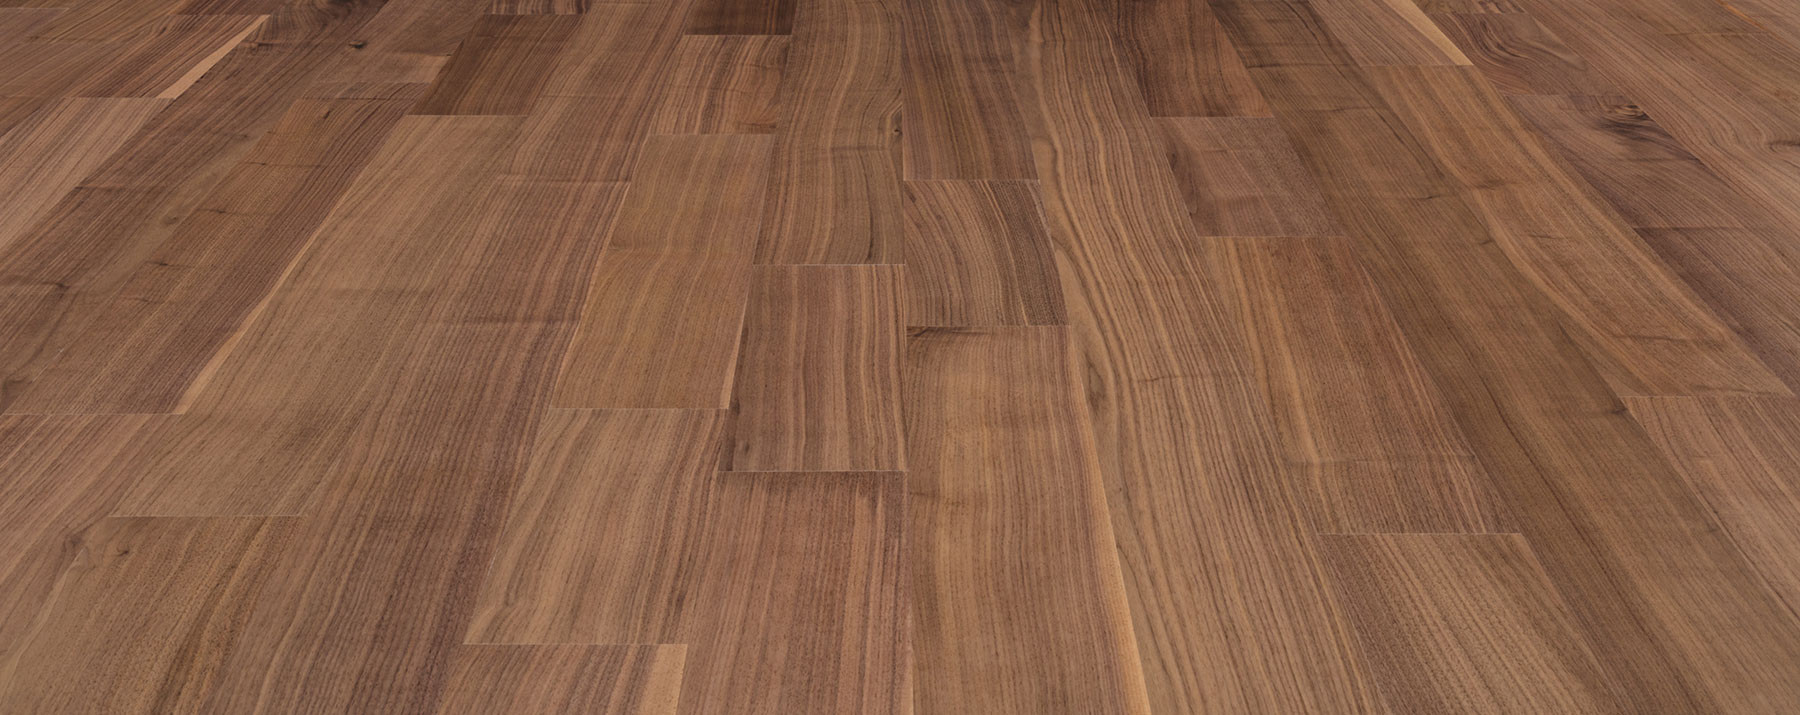 Prefinished Hardwood Flooring Beveled Edges Of American Quartered Walnut 5″ Etx Surfaces In American Quartered Walnut 5″ American Quartered Walnut Engineered Wood Flooring